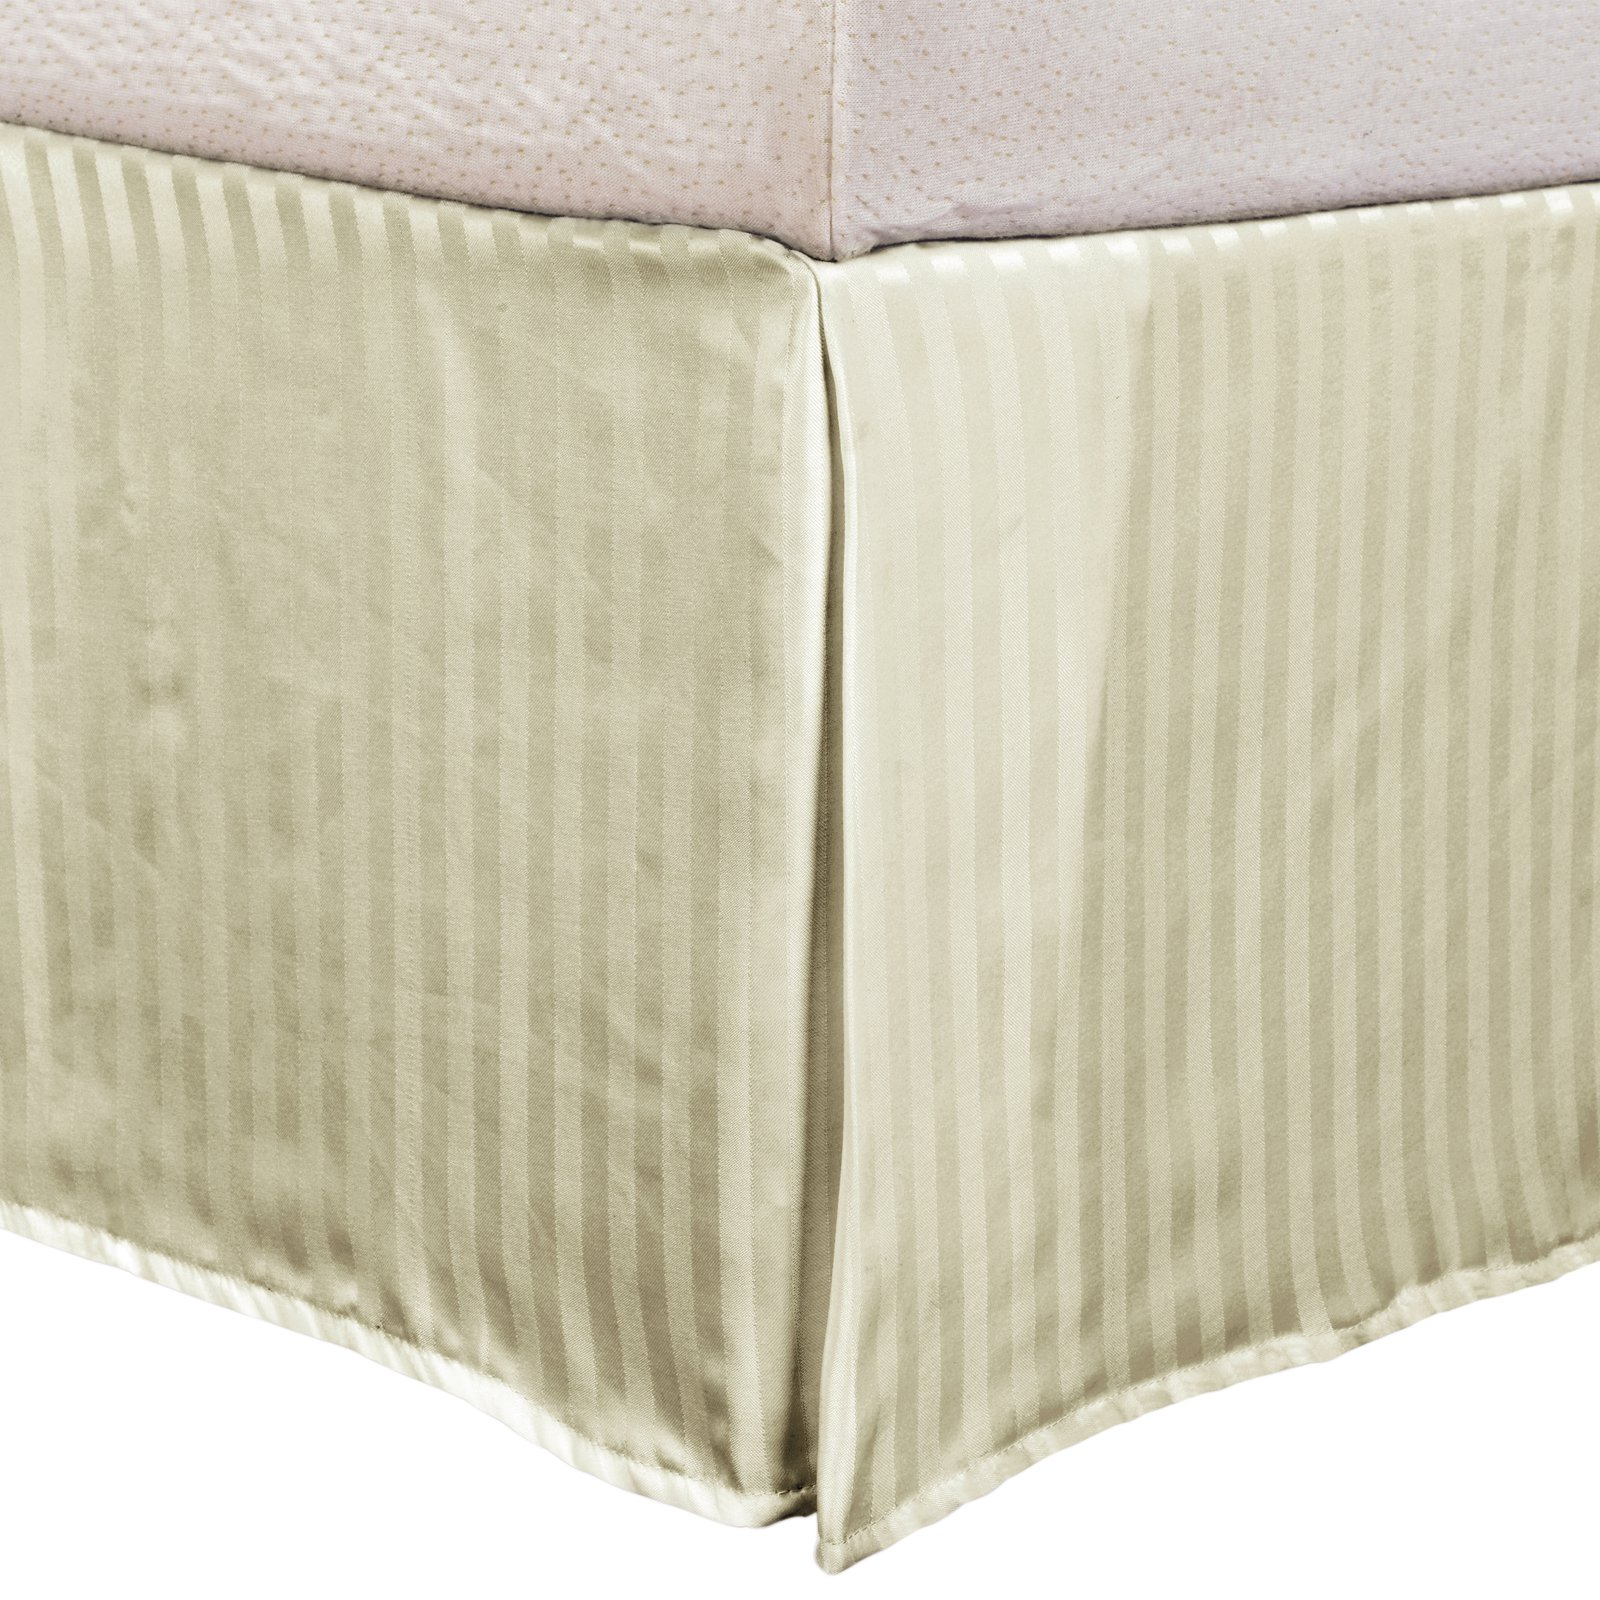 Superior 1500 Series Microfiber Wrinkle Resistant Pleated Stripe Bed Skirt with 15-Inch Drop